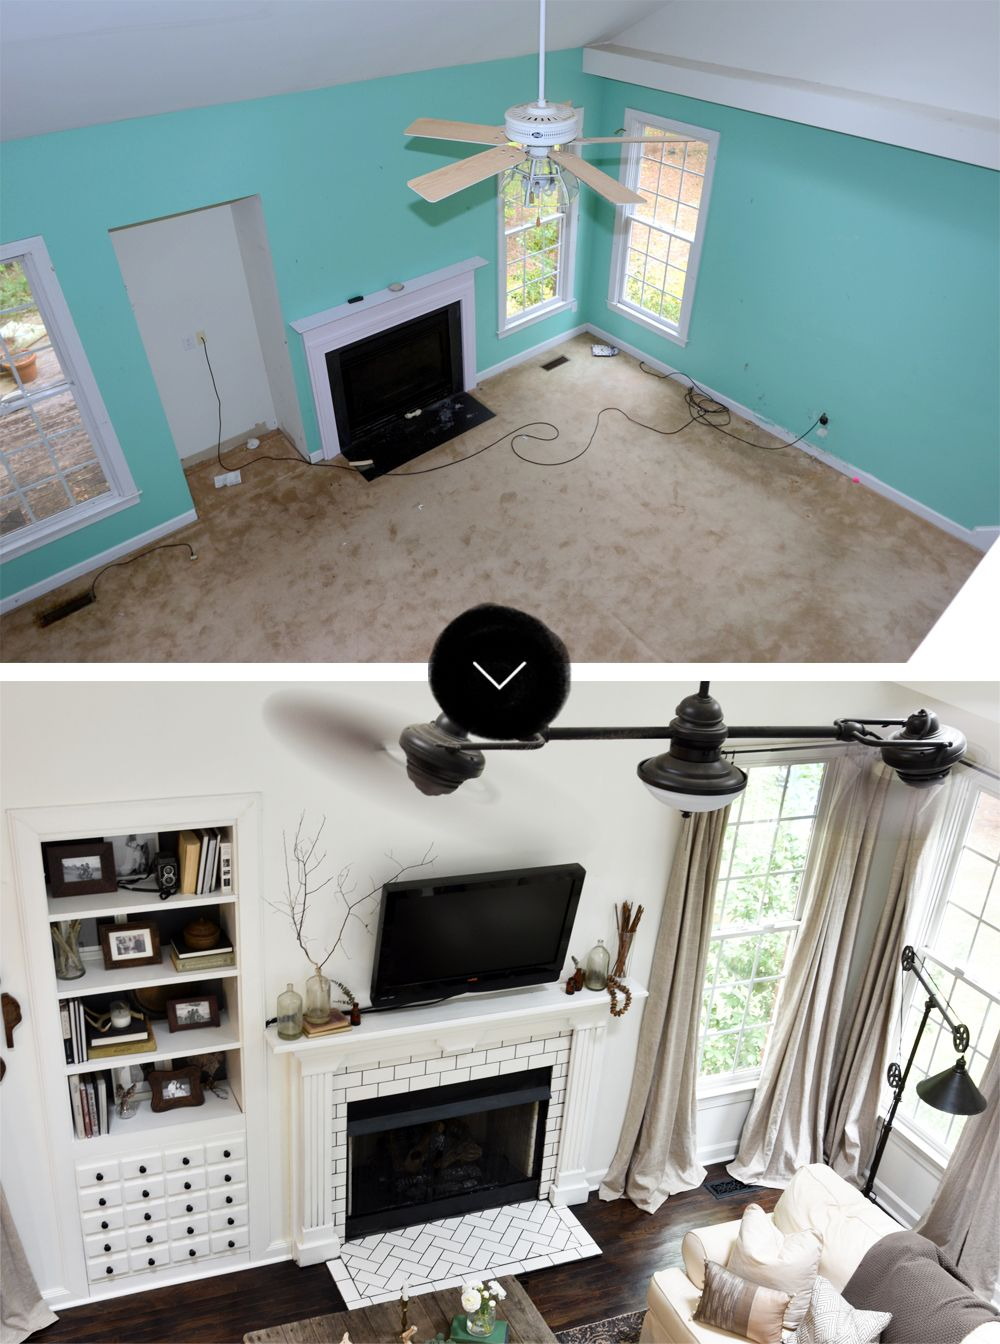 Forclosure Remodel: Before & After: A Reclaimed Traditional Brick Foreclosure